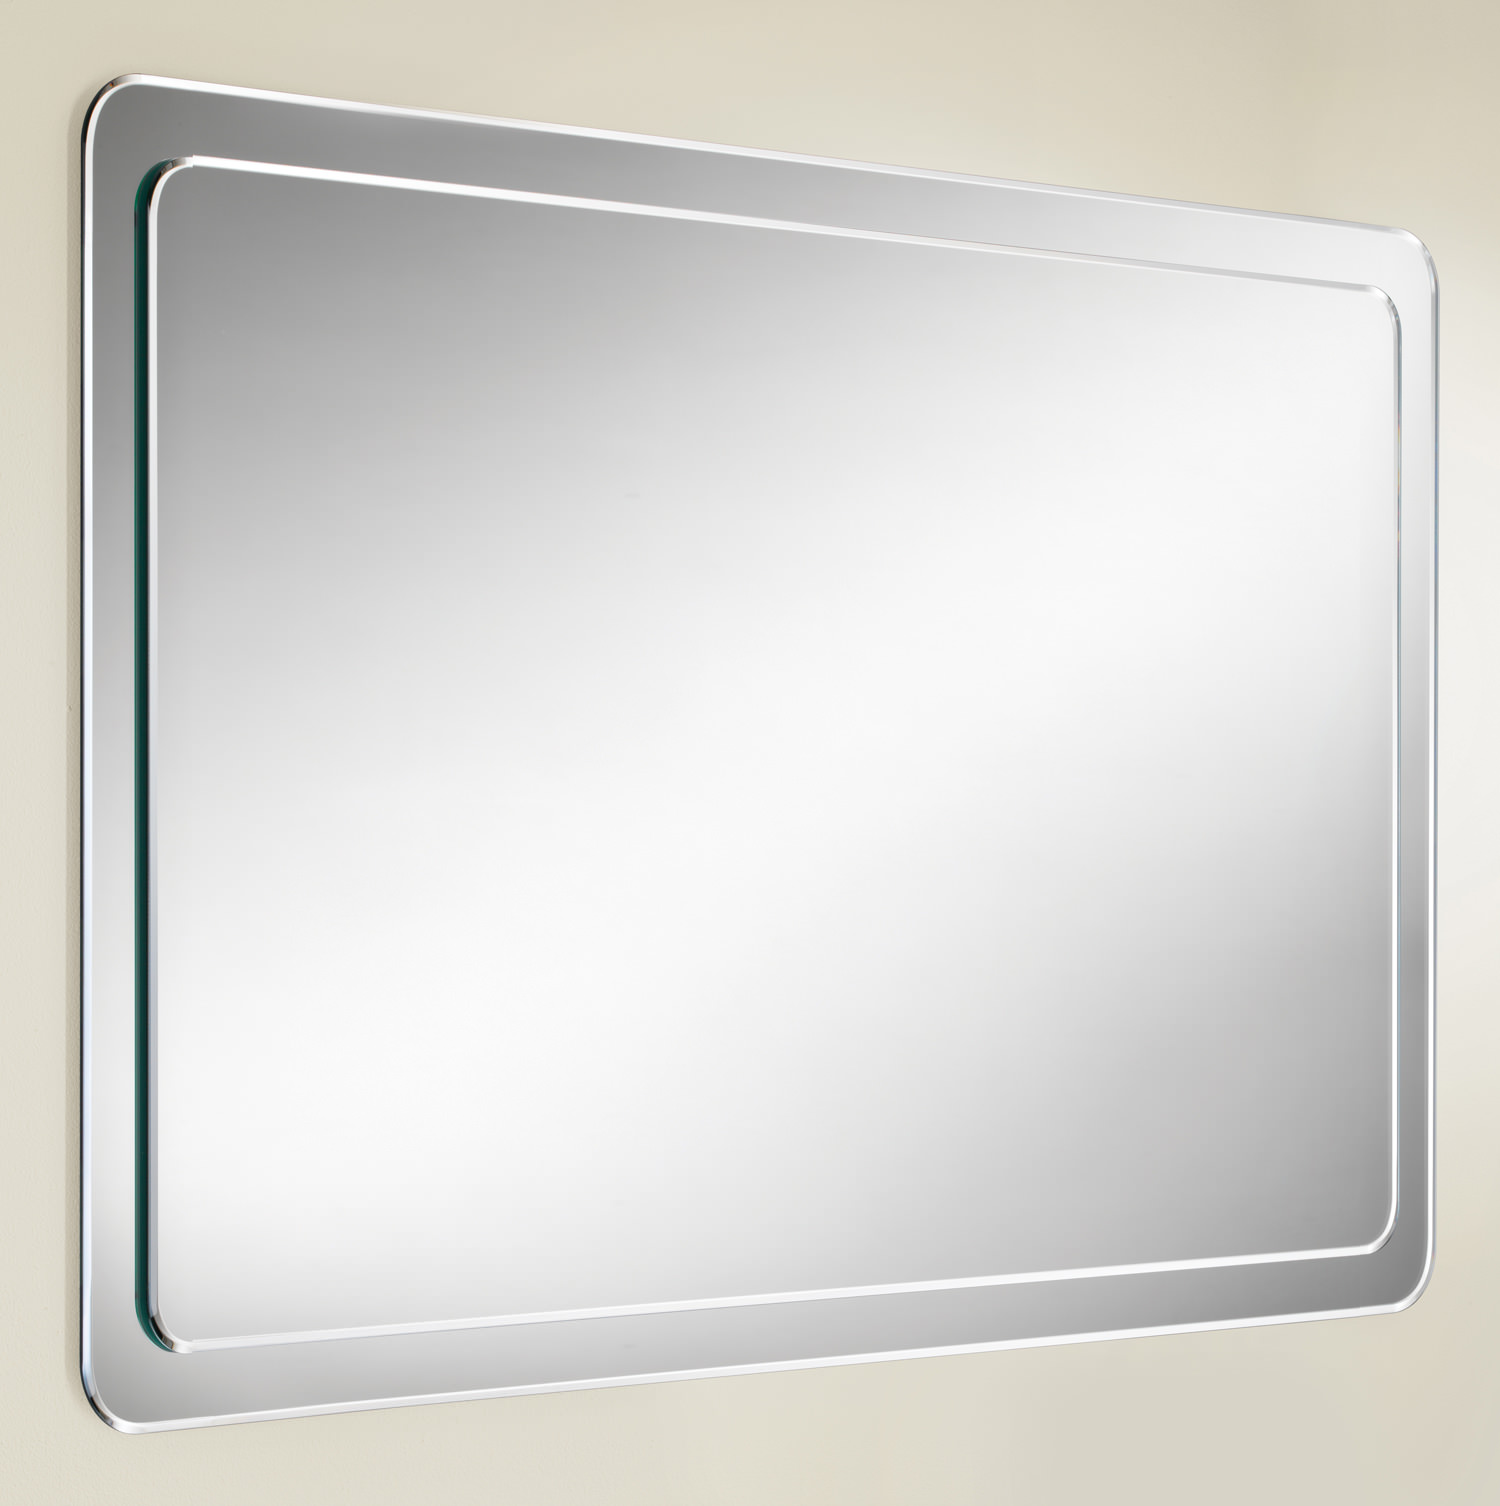 hib abbi bevelled mirror on mirror with rounded corners 76600000